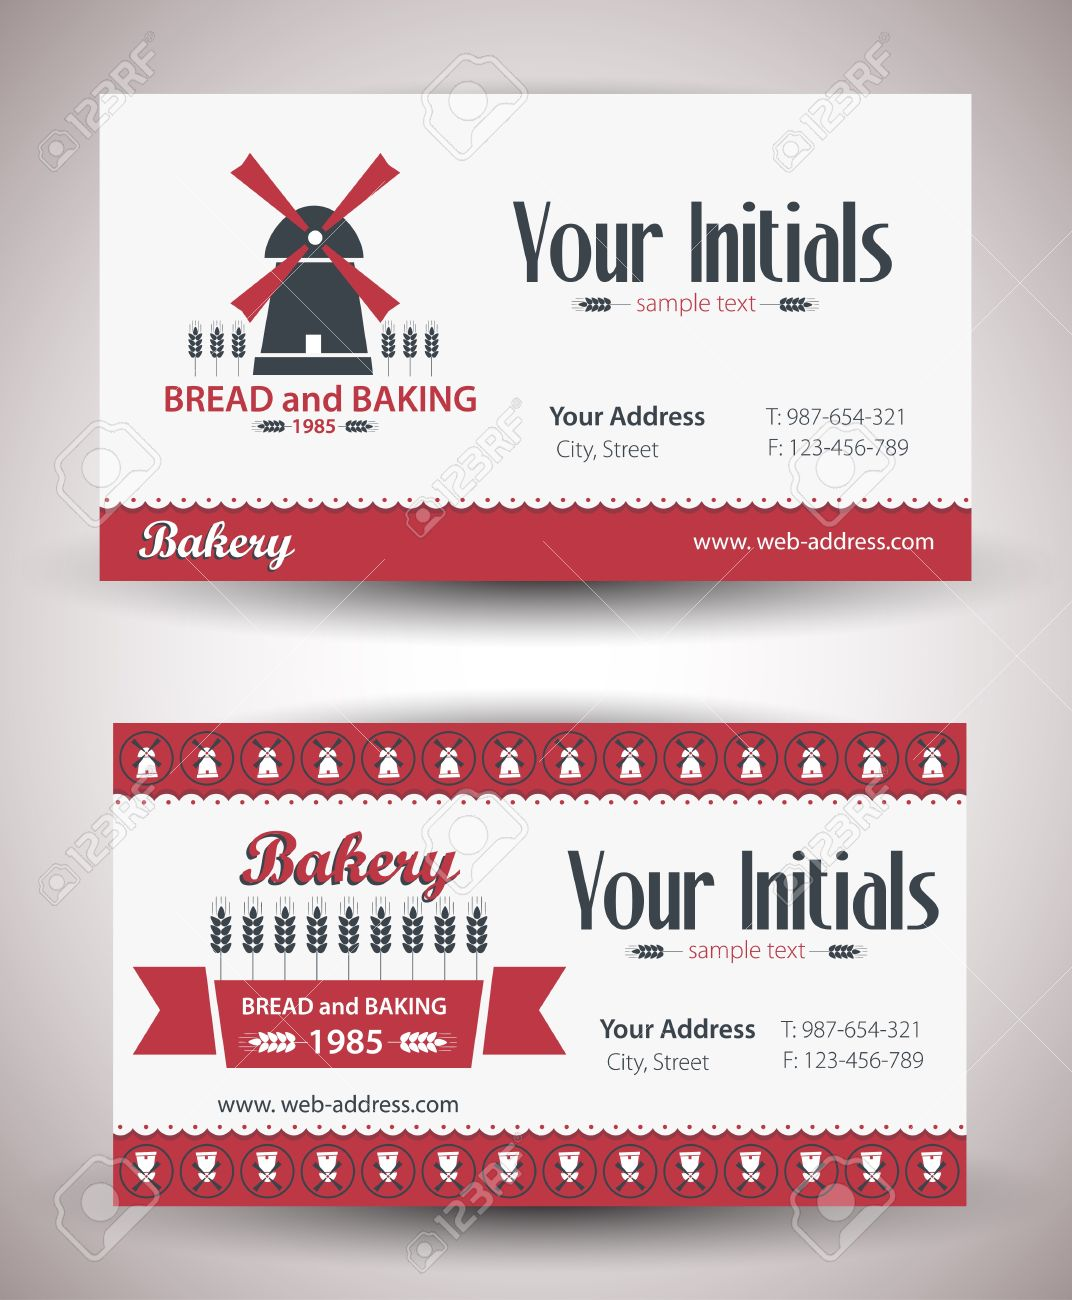 Vector Retro Vintage Business Card For Bakery Business Royalty Free ...